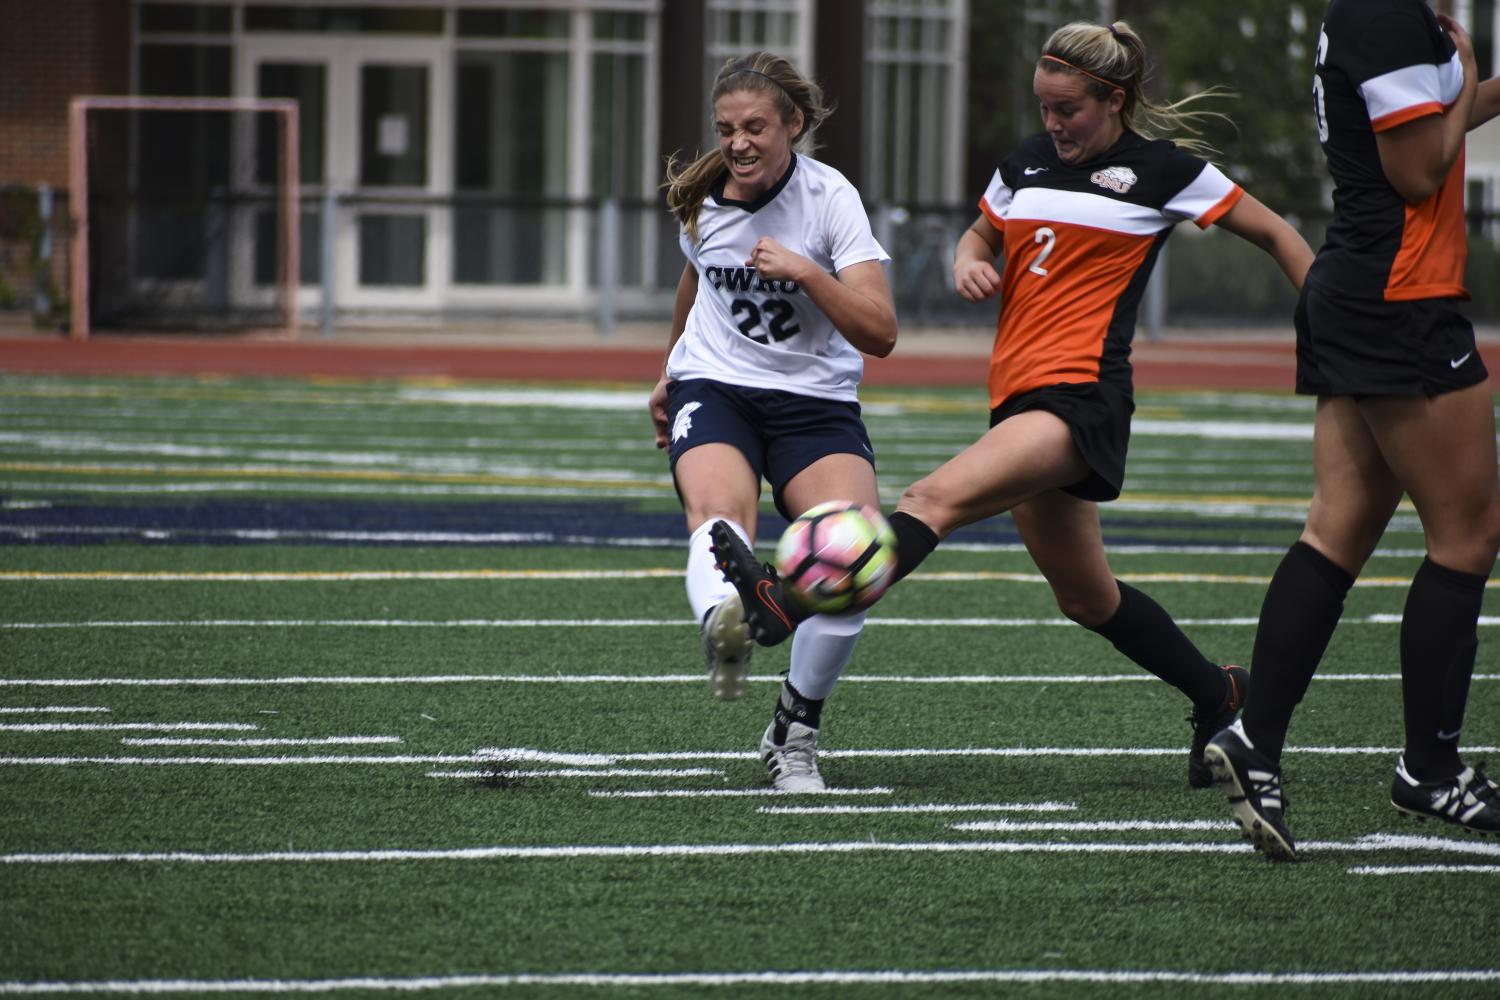 Kicking the ball past a defender earlier in the season, fourth-year midfielder Elle Zadina braces for impact. The Spartans lost their first conference match, but rebounded with a win on Oct. 3.